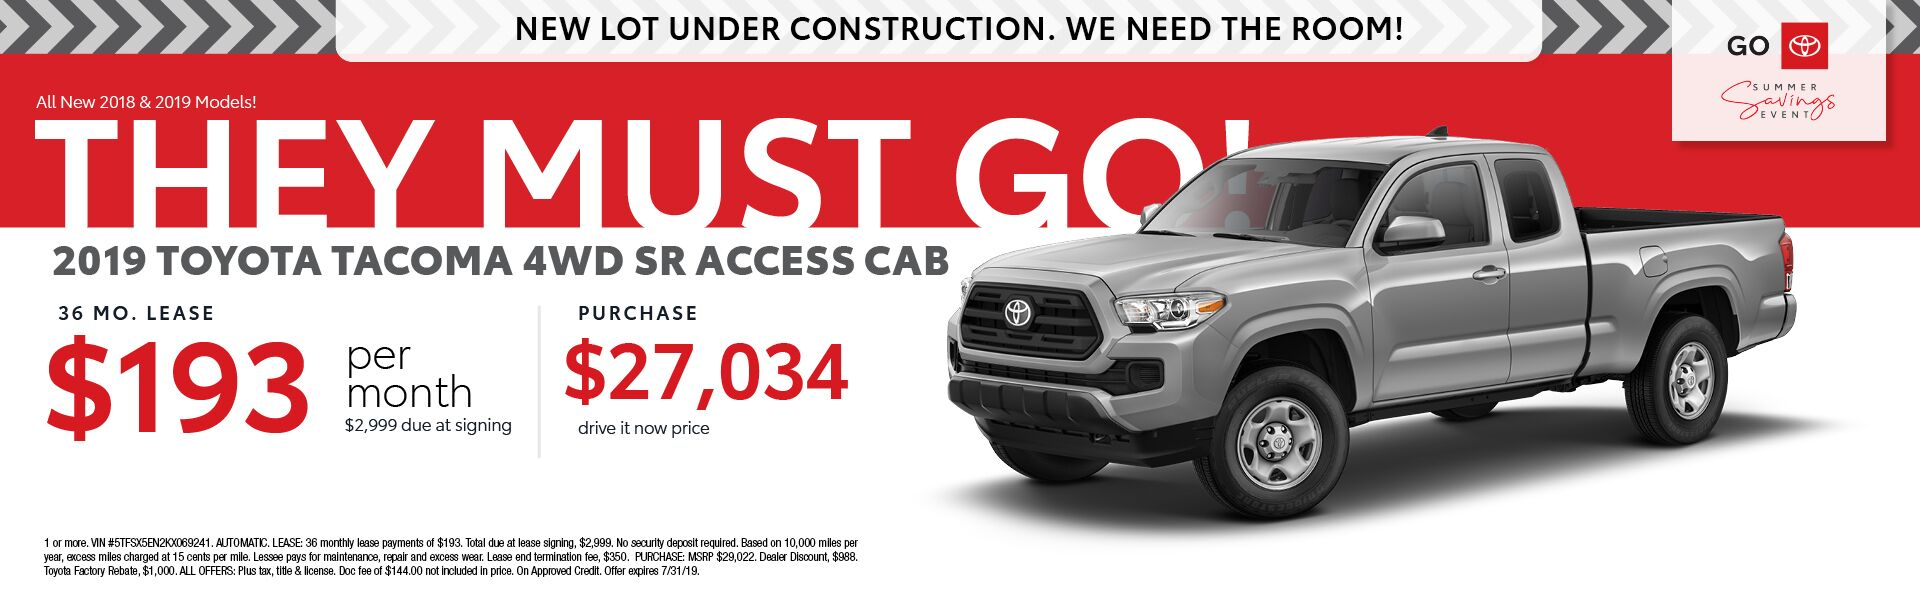 2019 Toyota Tacoma 4WD SR Access Cab Lease for 36 months $193 per month $2,999 due at signing - Purchase for $27,034